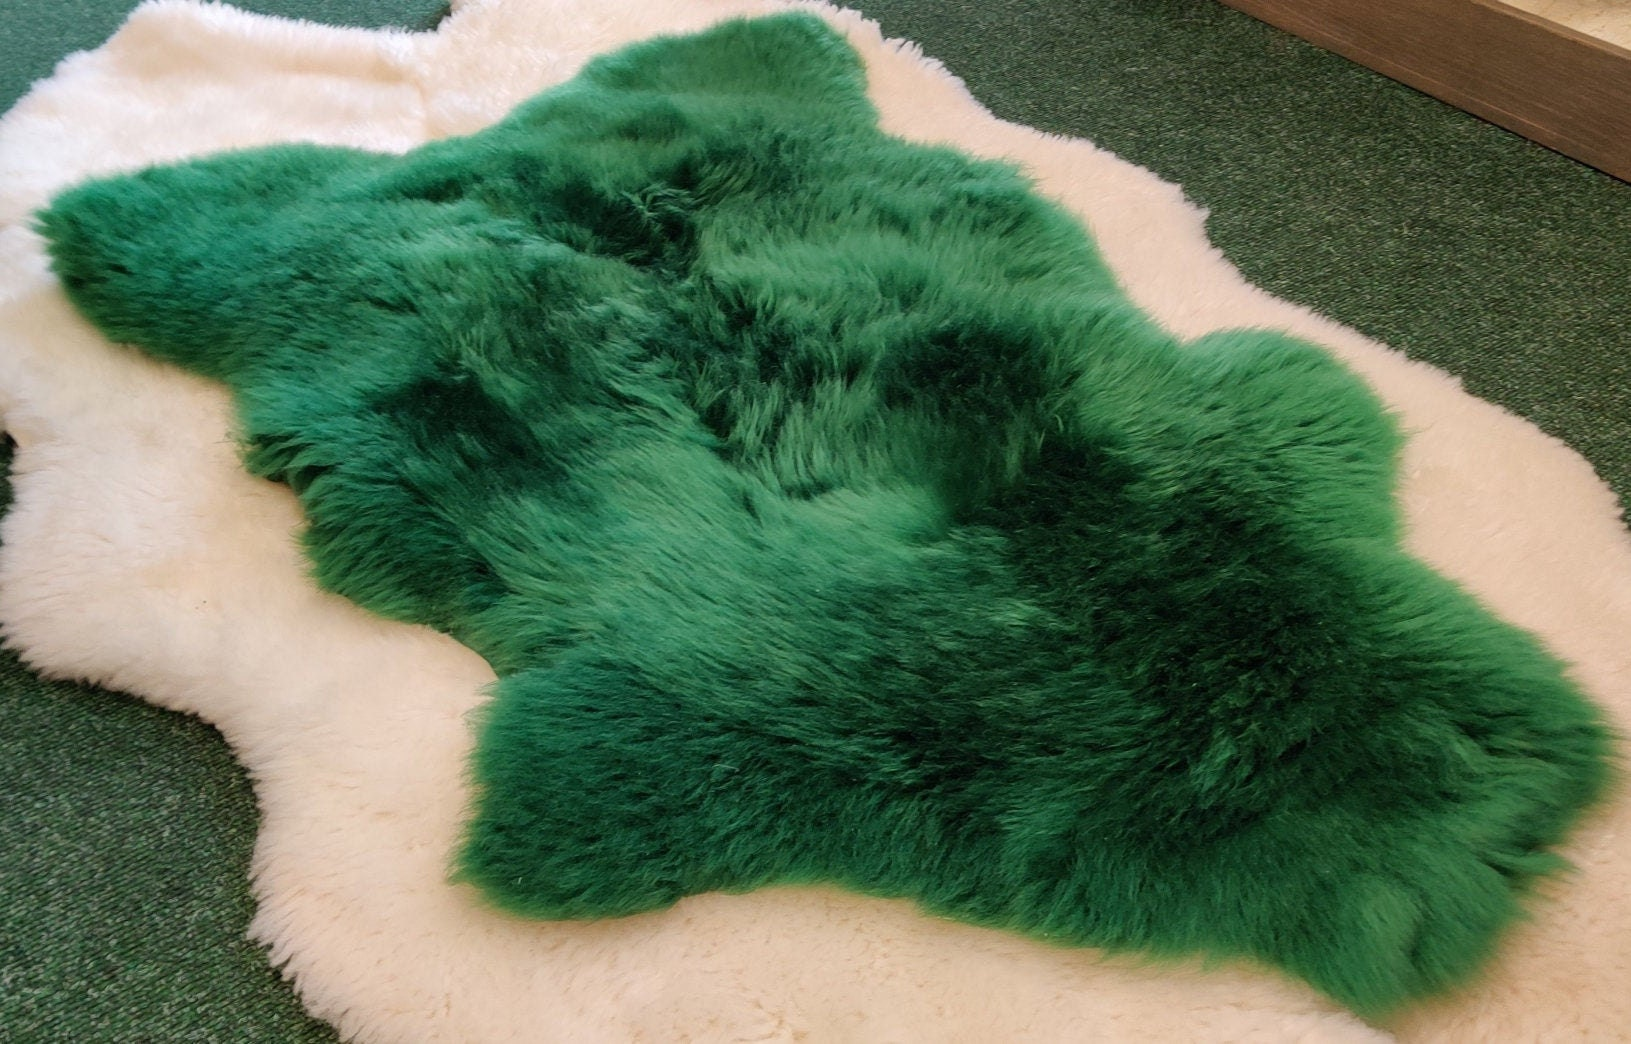 Picture of: Genuine Irish Sheepskin Rug Dyed Emerald Green Really Soft Thick Free Worldwide Shipping From Ireland